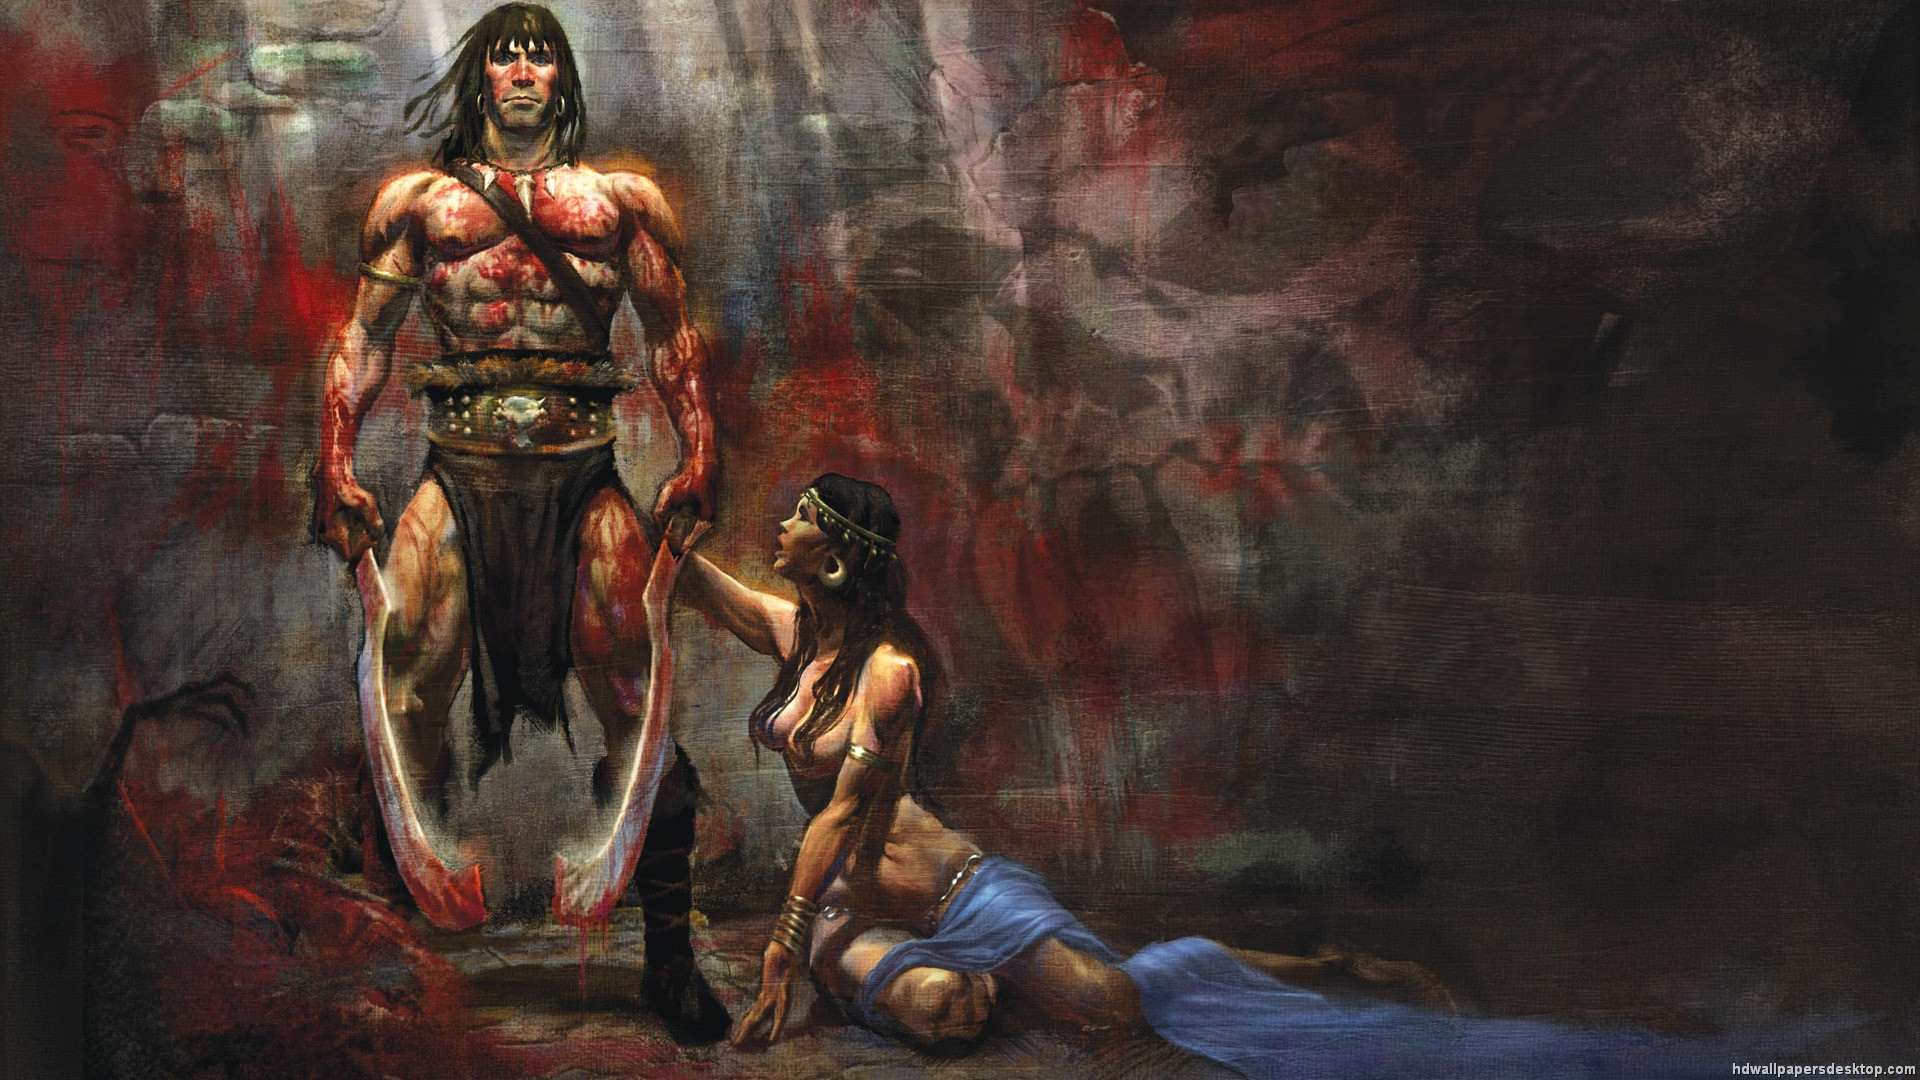 Conan the Barbarian Wallpaper Conan Red Sonja Wallpaper 1920x1080 1920x1080